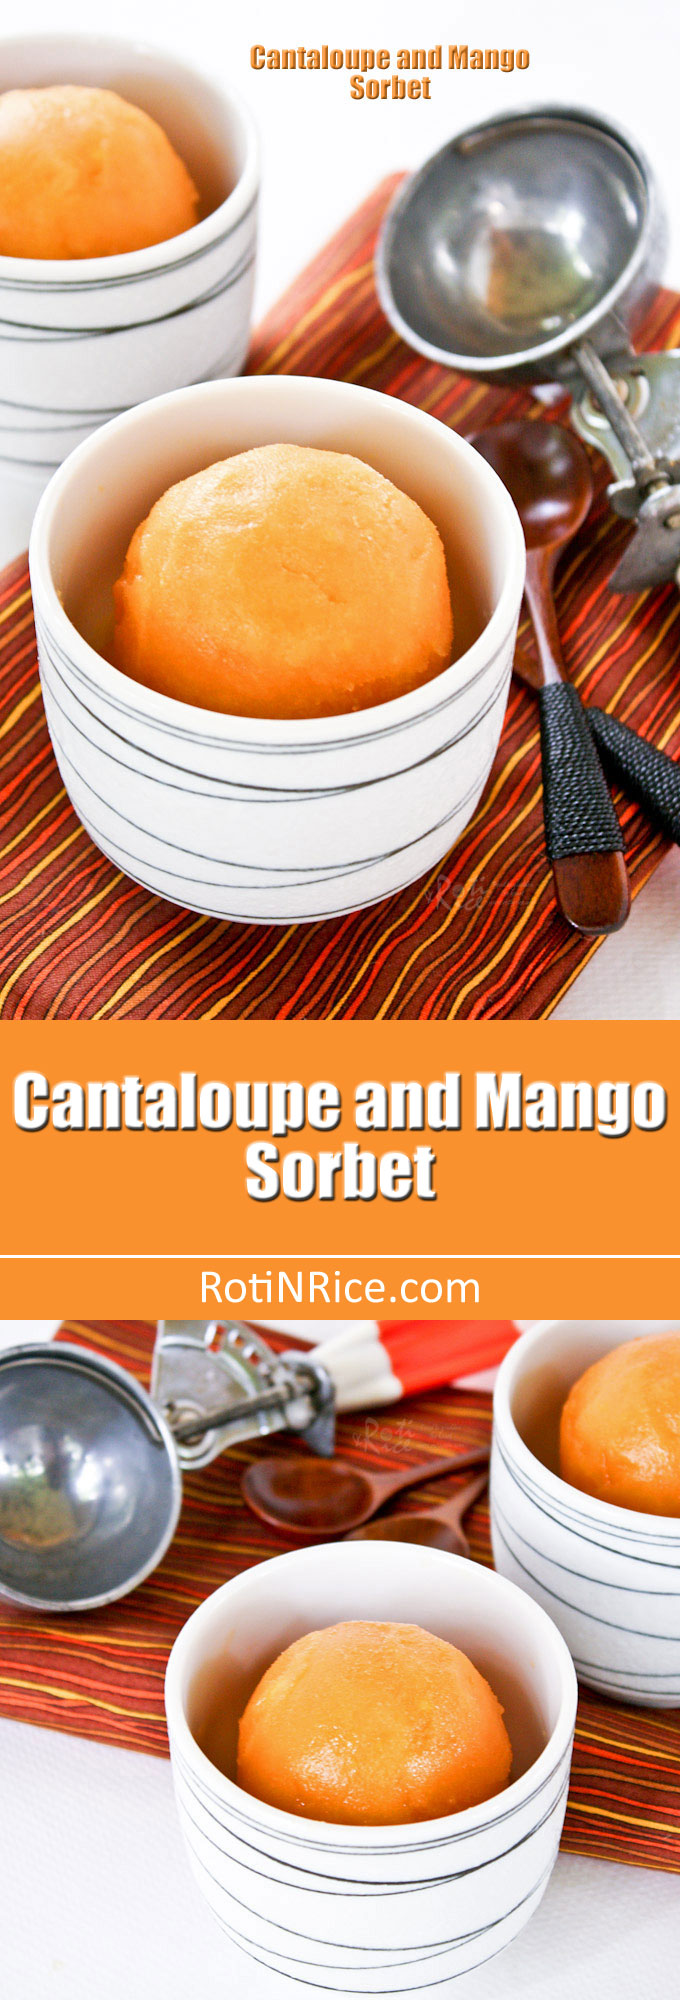 Only  four ingredients to make this juicy and refreshing Cantaloupe and Mango Sorbet. A wonderful combination and a must try for the warm summer months. | RotiNRice.com